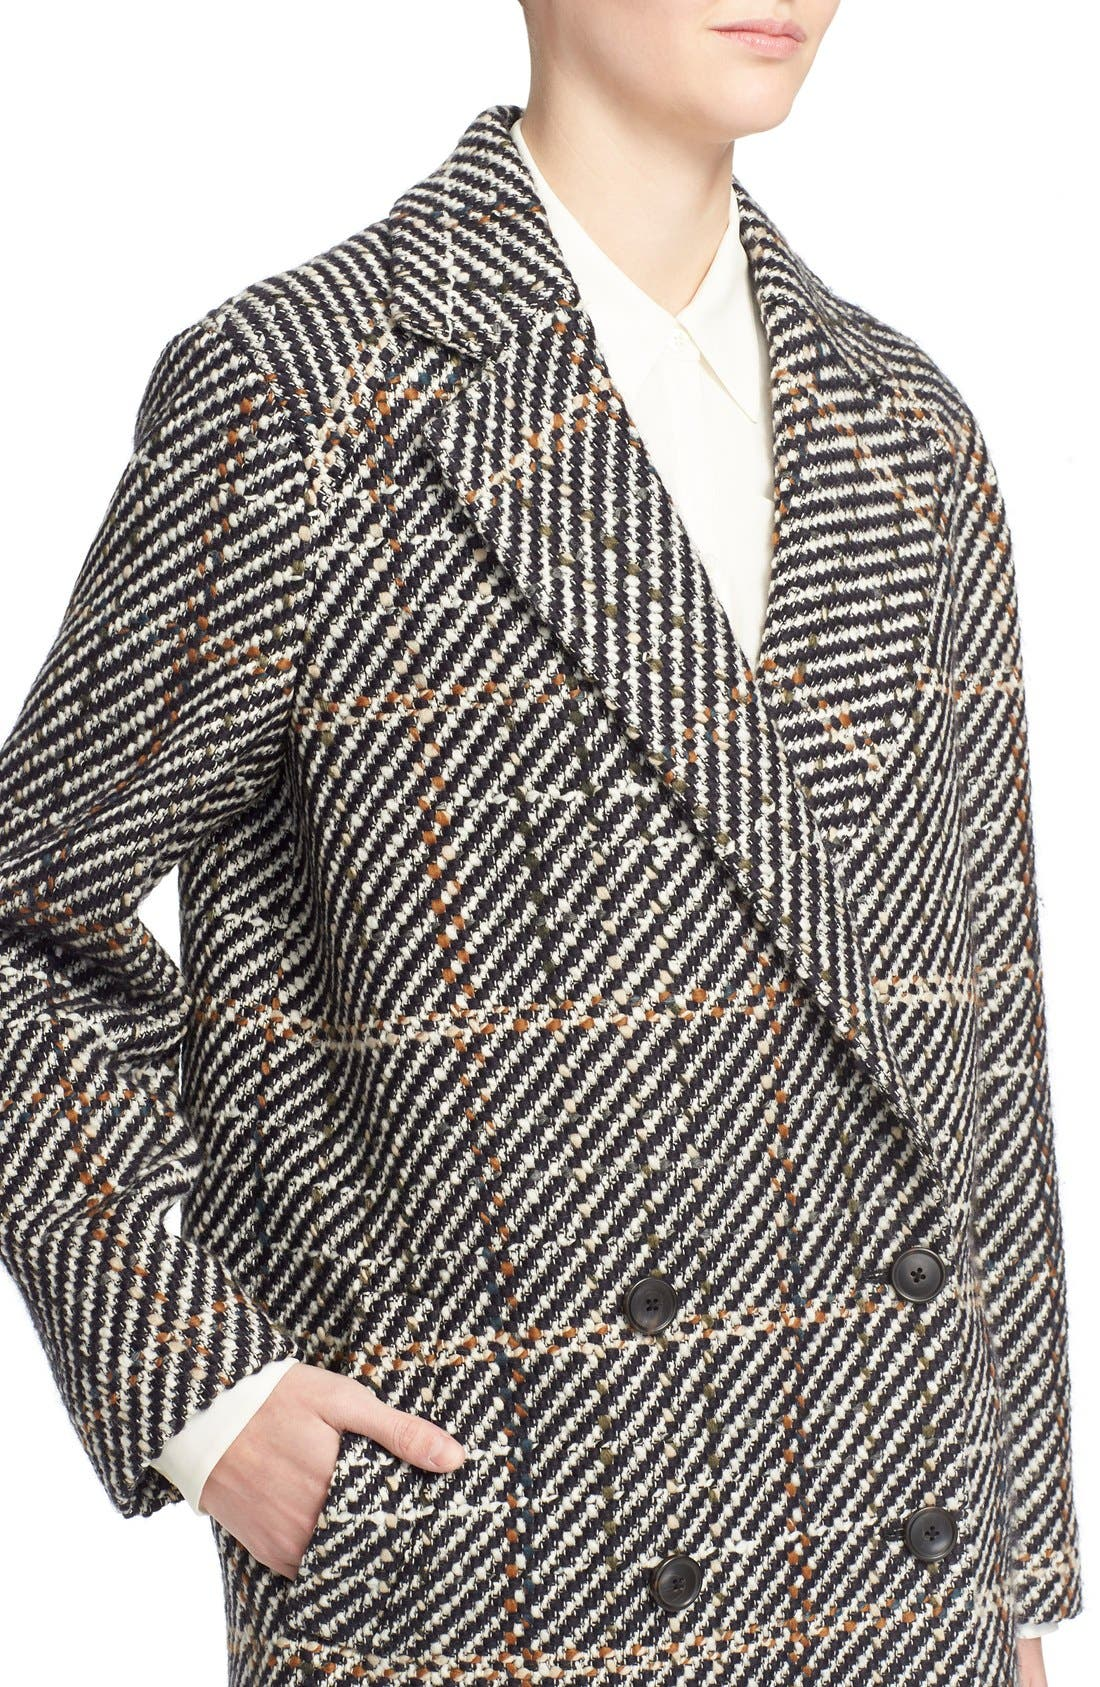 THEORY, Graphic Tweed Coat, Alternate thumbnail 2, color, 454